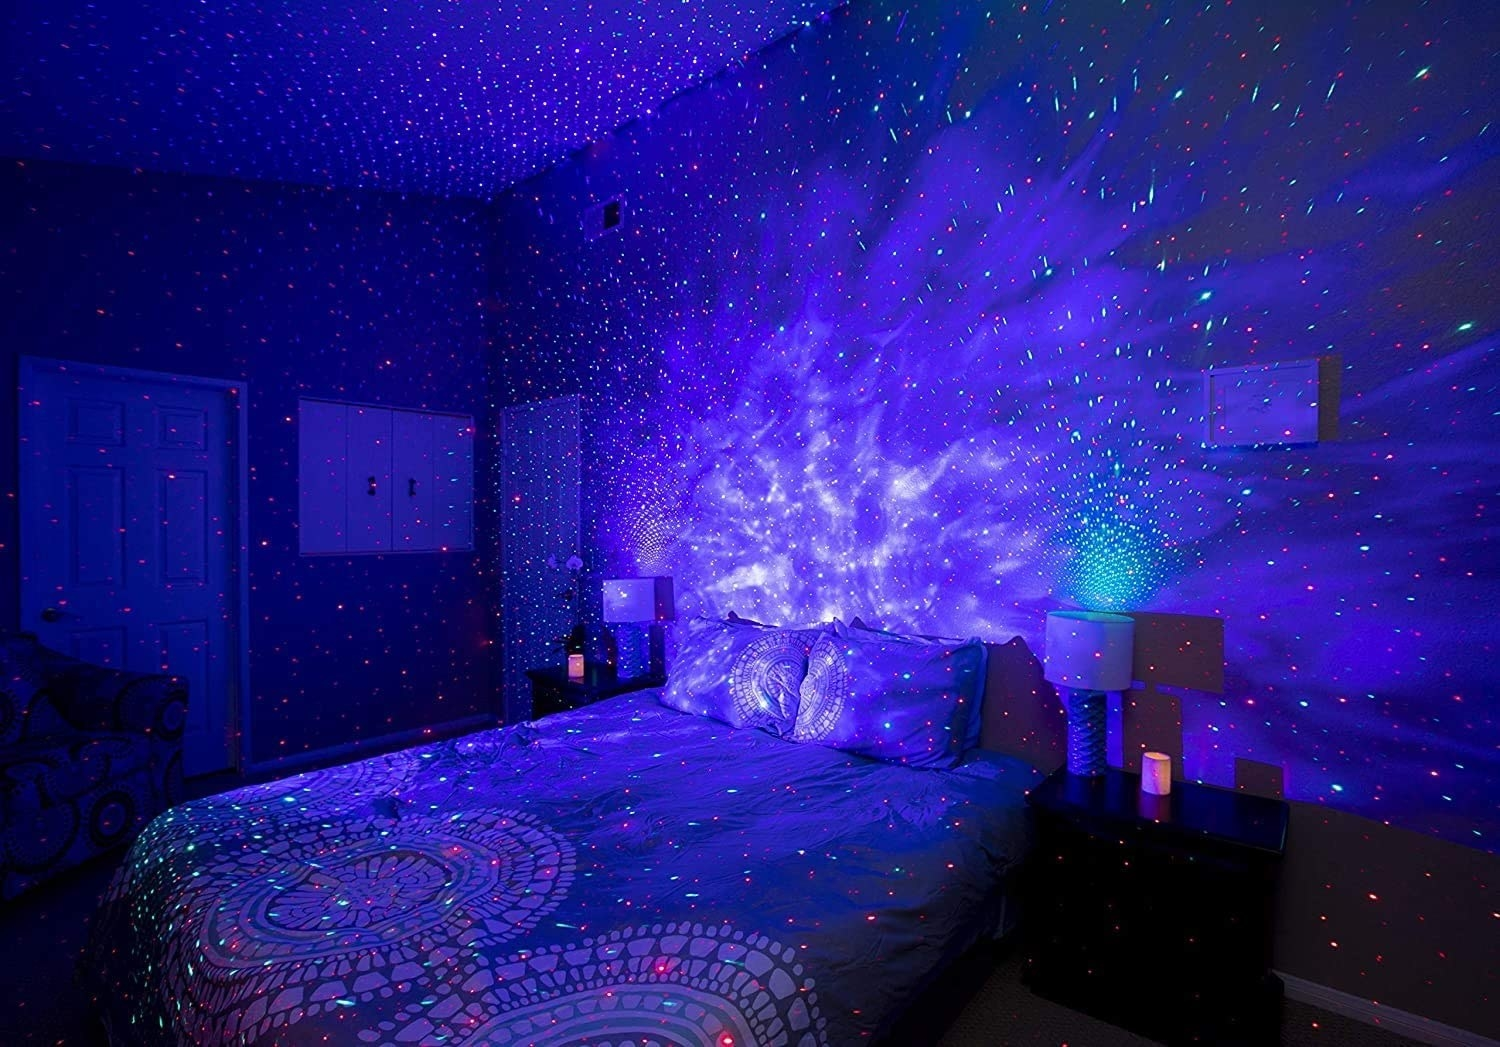 the blue and grey version of the galaxy light over a bed